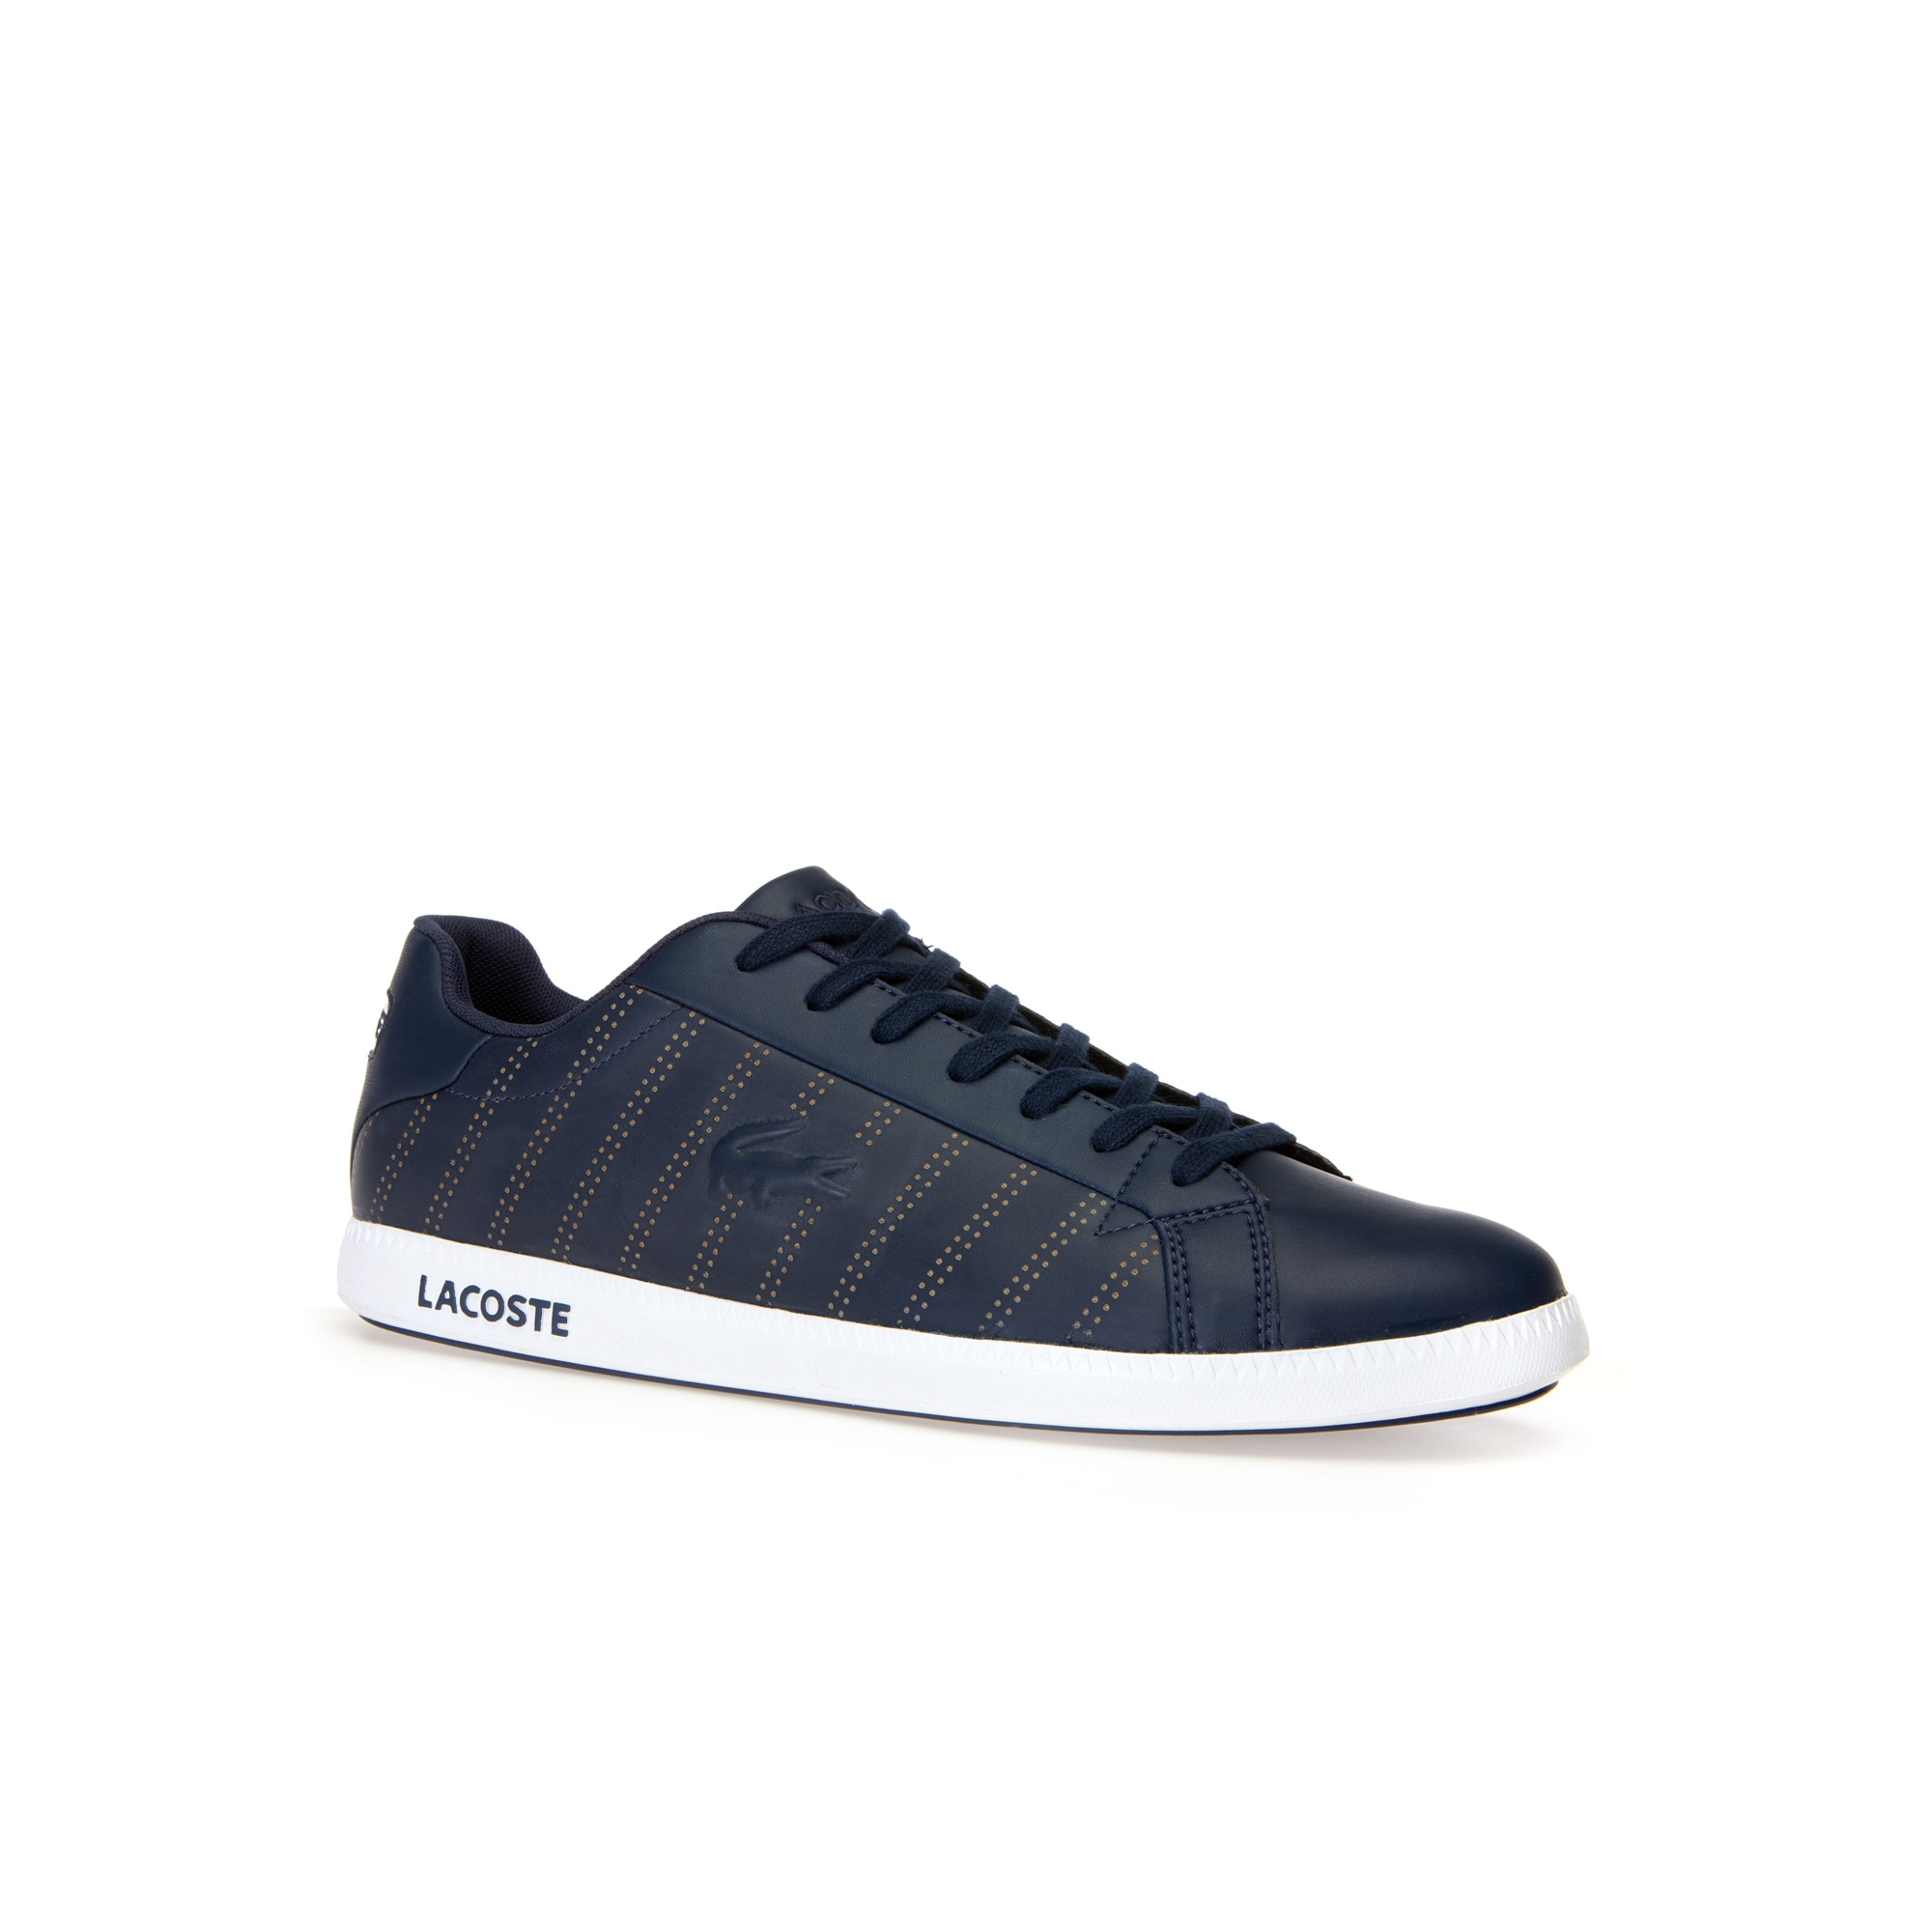 Men's Graduate Nappa Leather Trainers